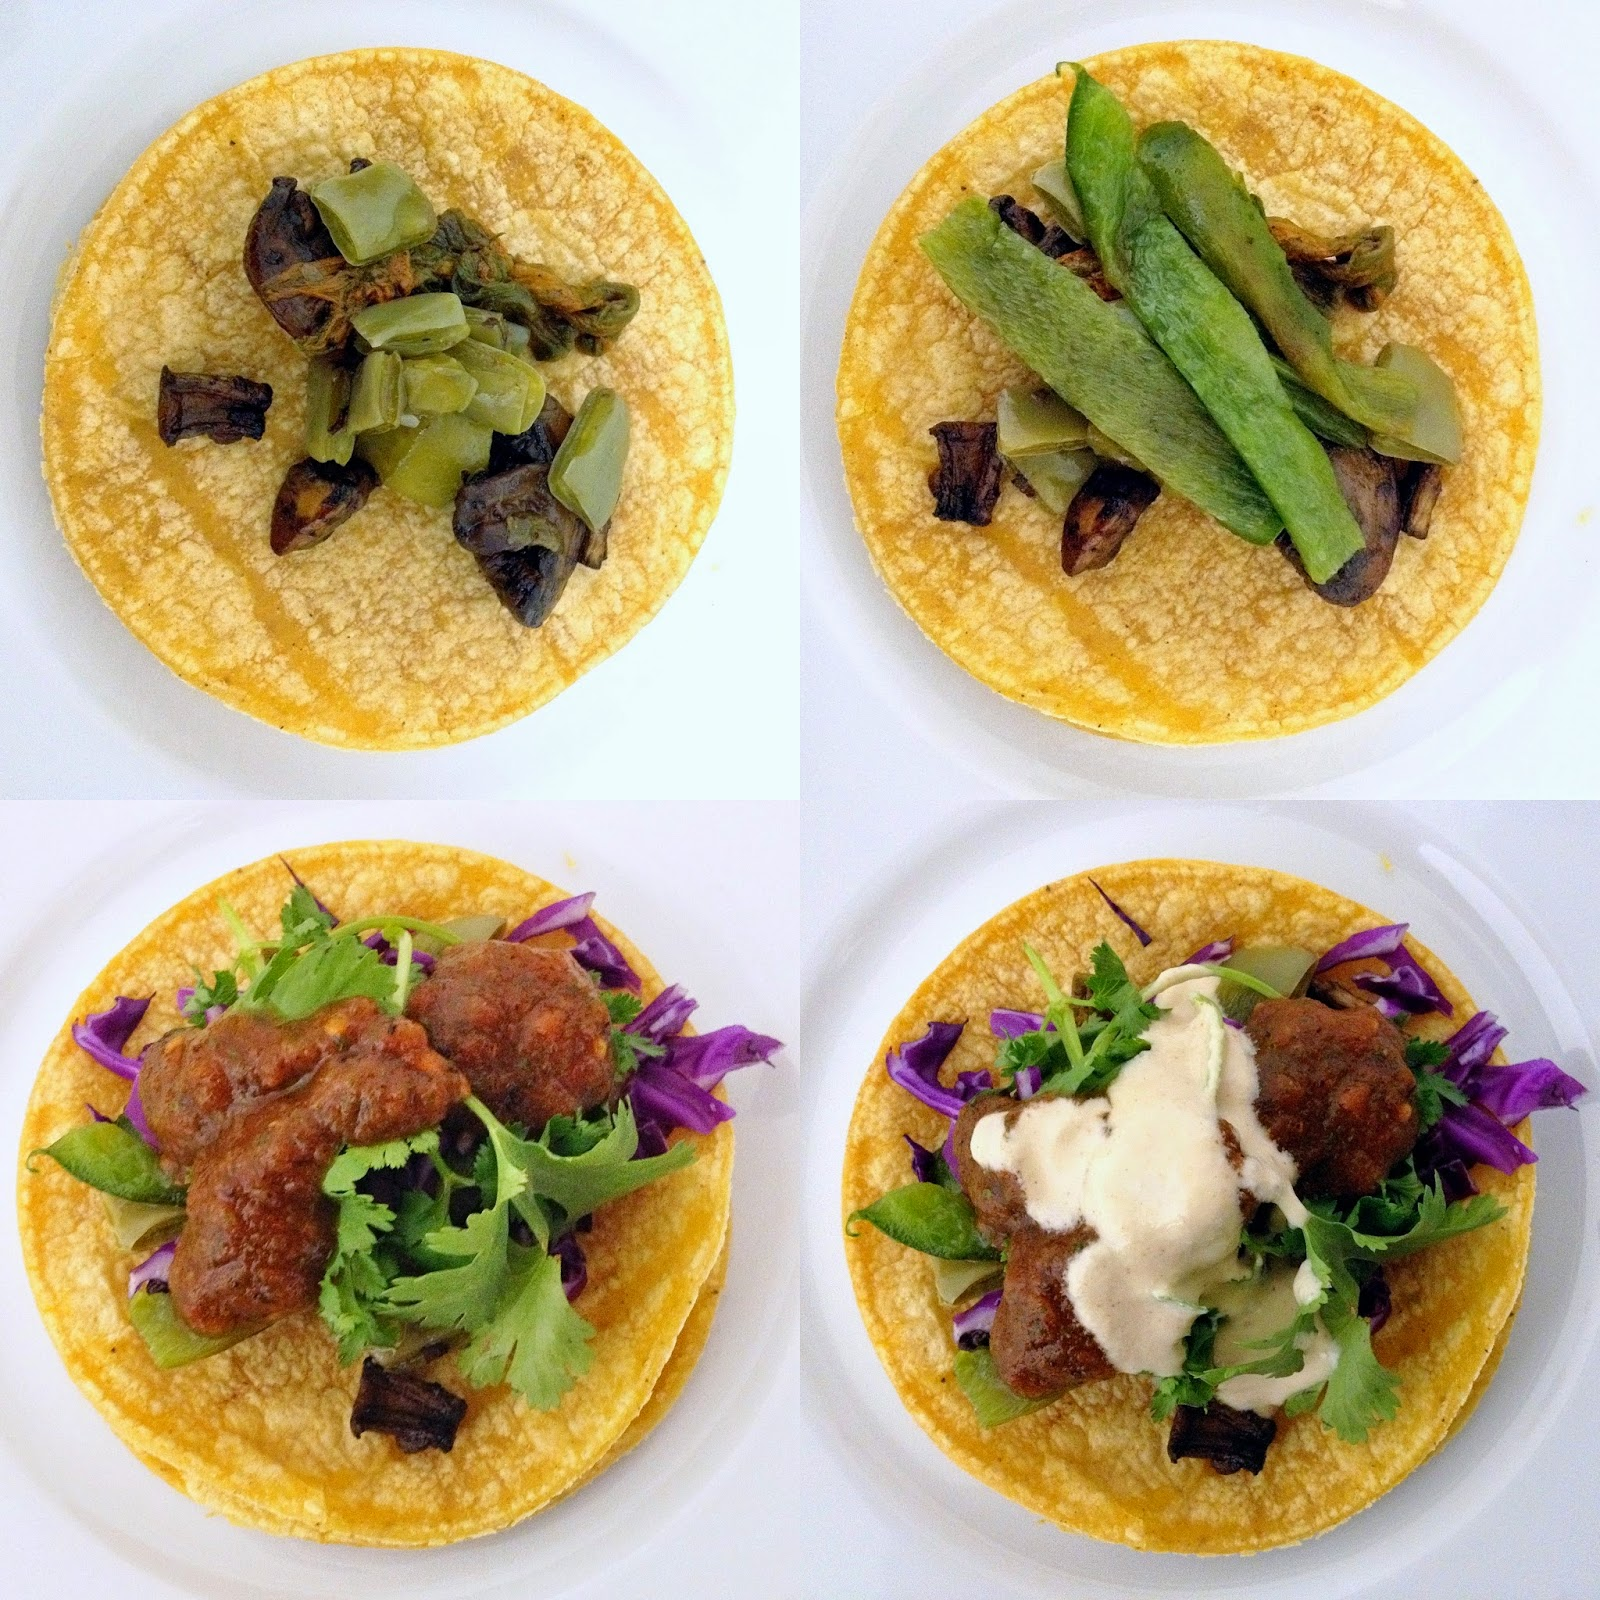 Taco Tuesday: Gourmet Tacos You Have To Try Right Now